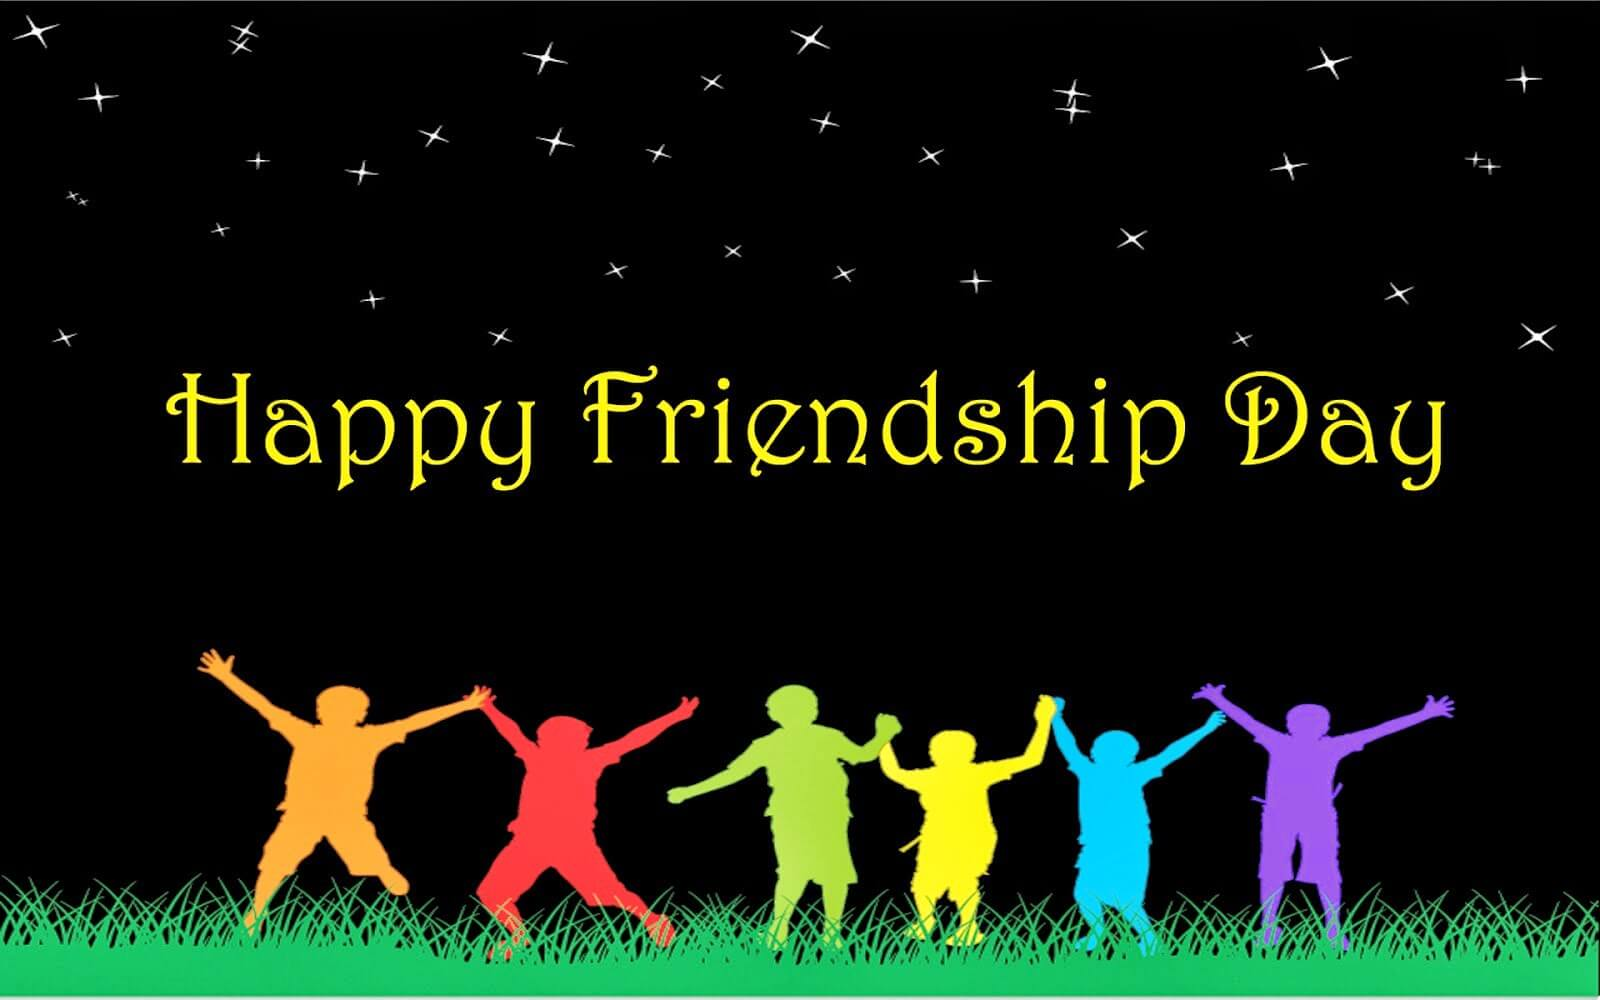 happy friendship day silhouette hd wallpaper